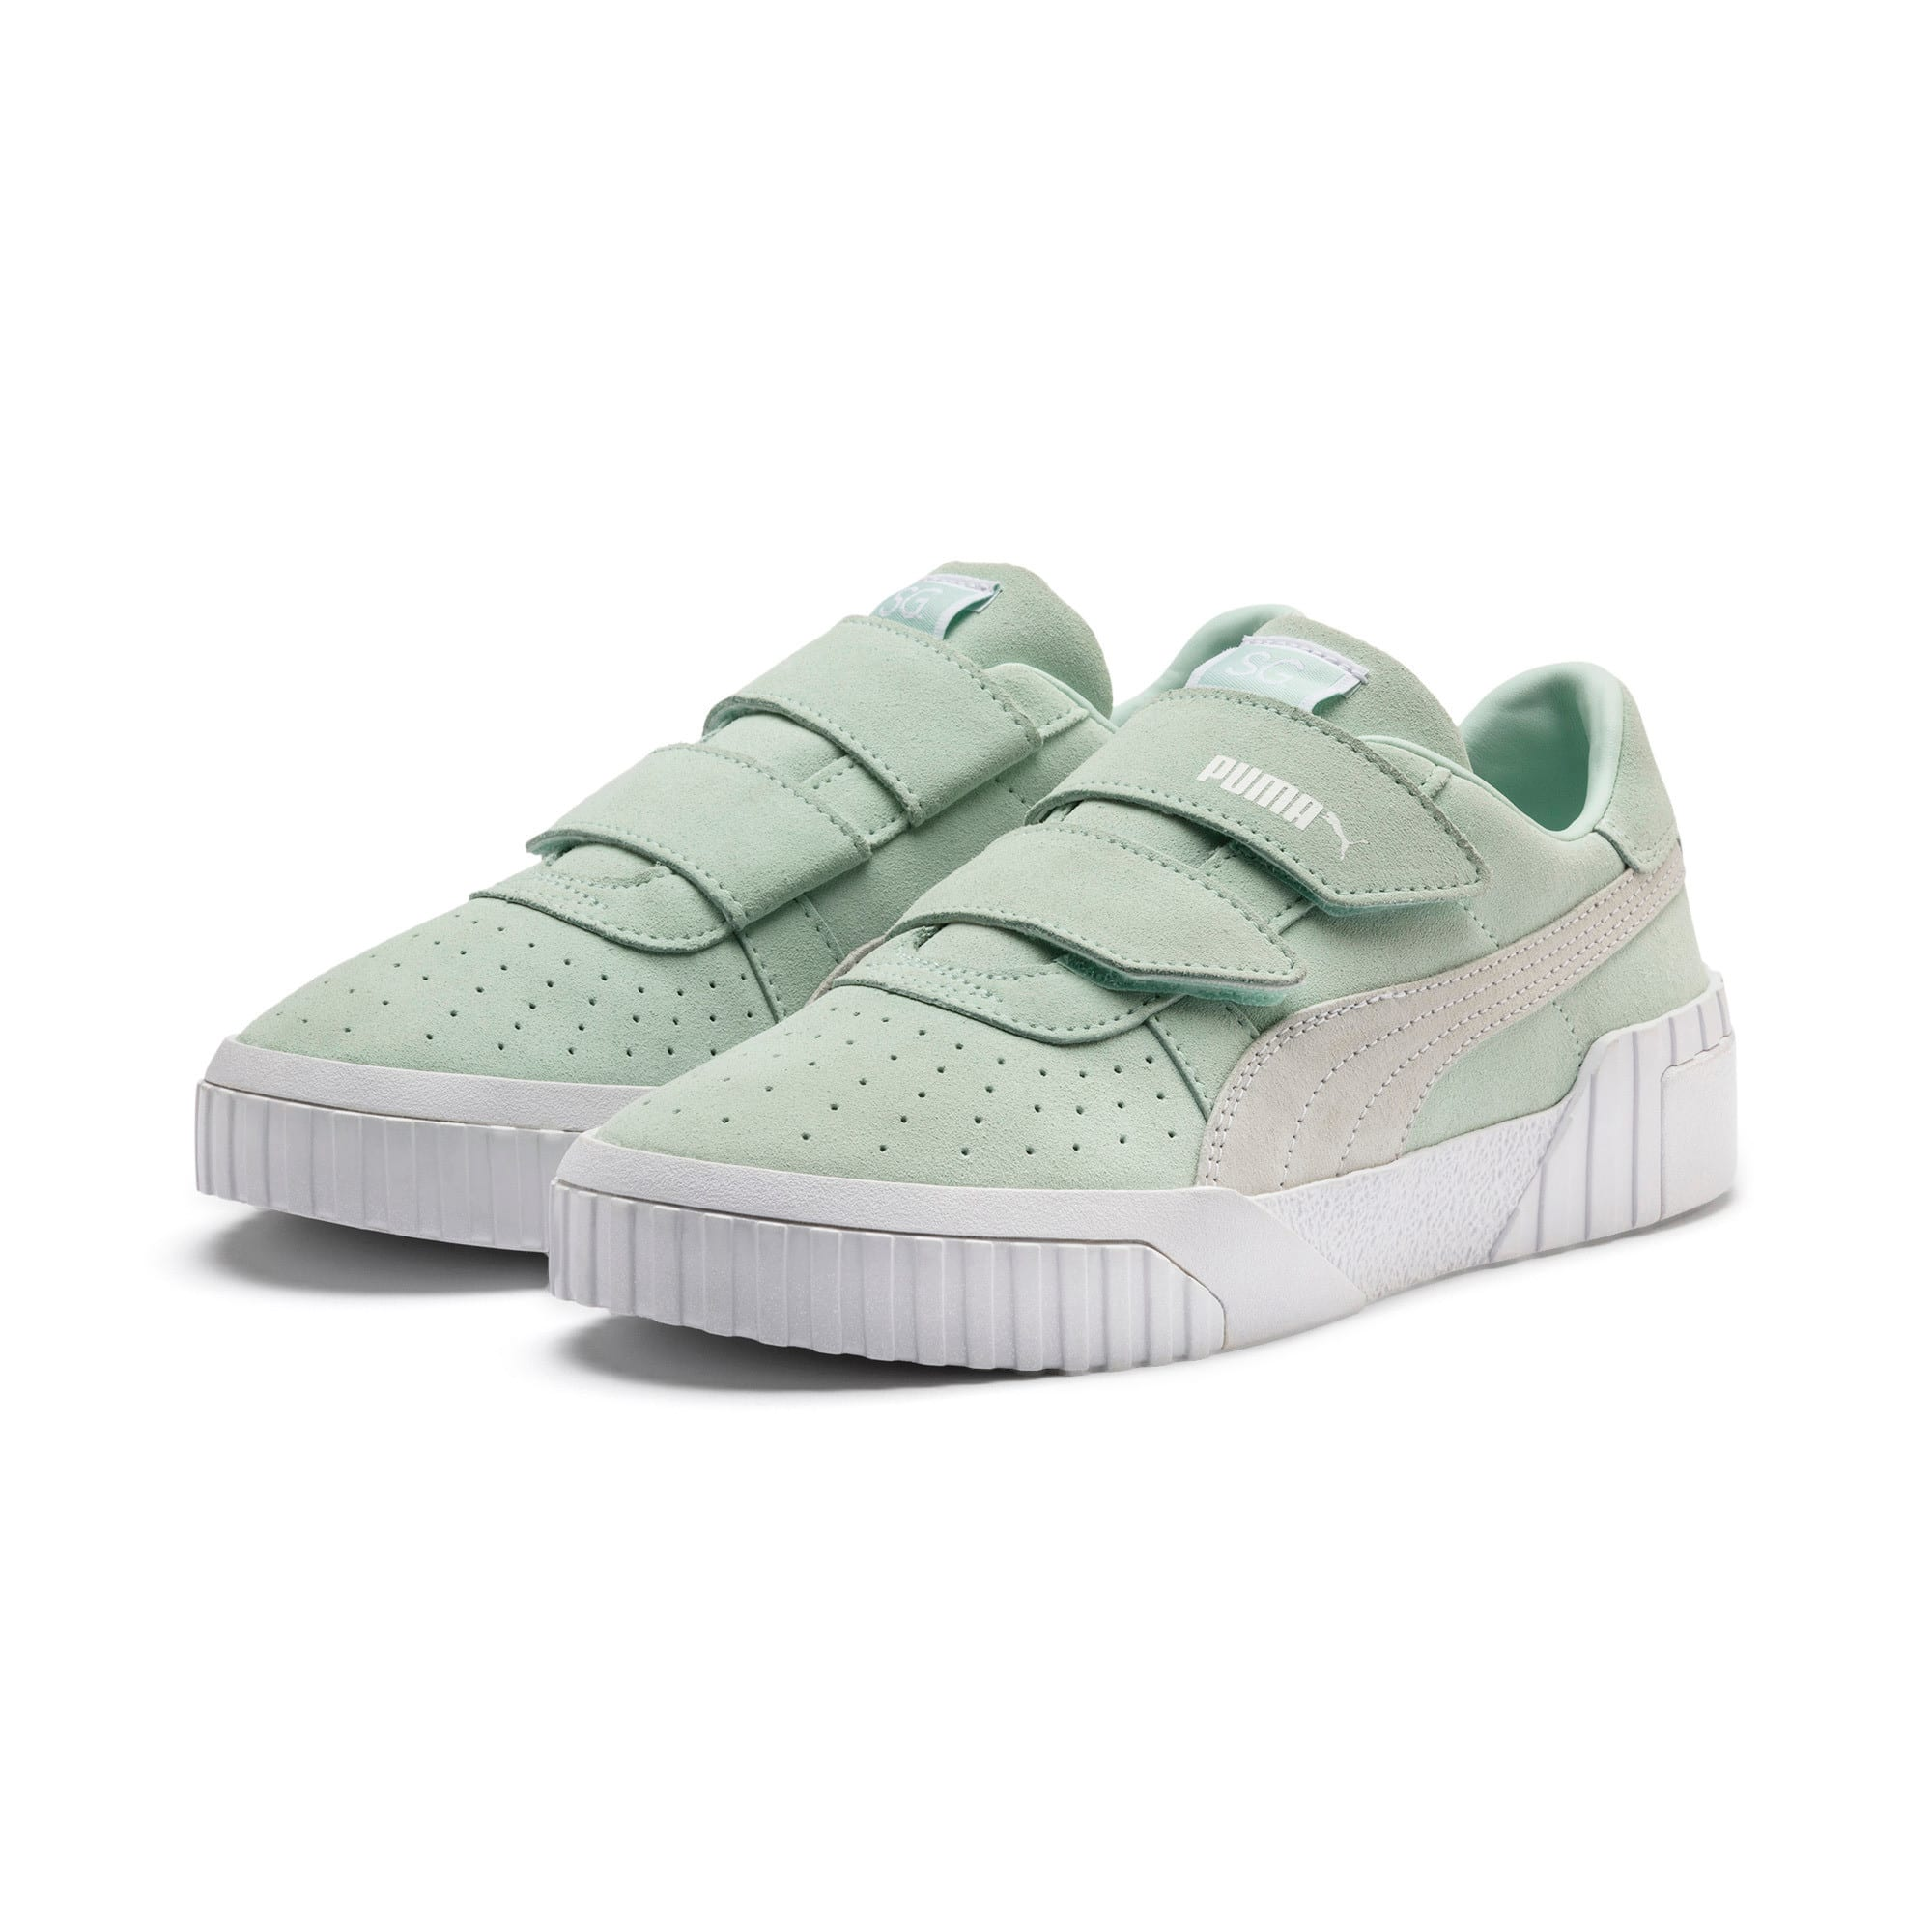 Thumbnail 3 of PUMA x SELENA GOMEZ Cali Women's Trainers, Fair Aqua-Puma White, medium